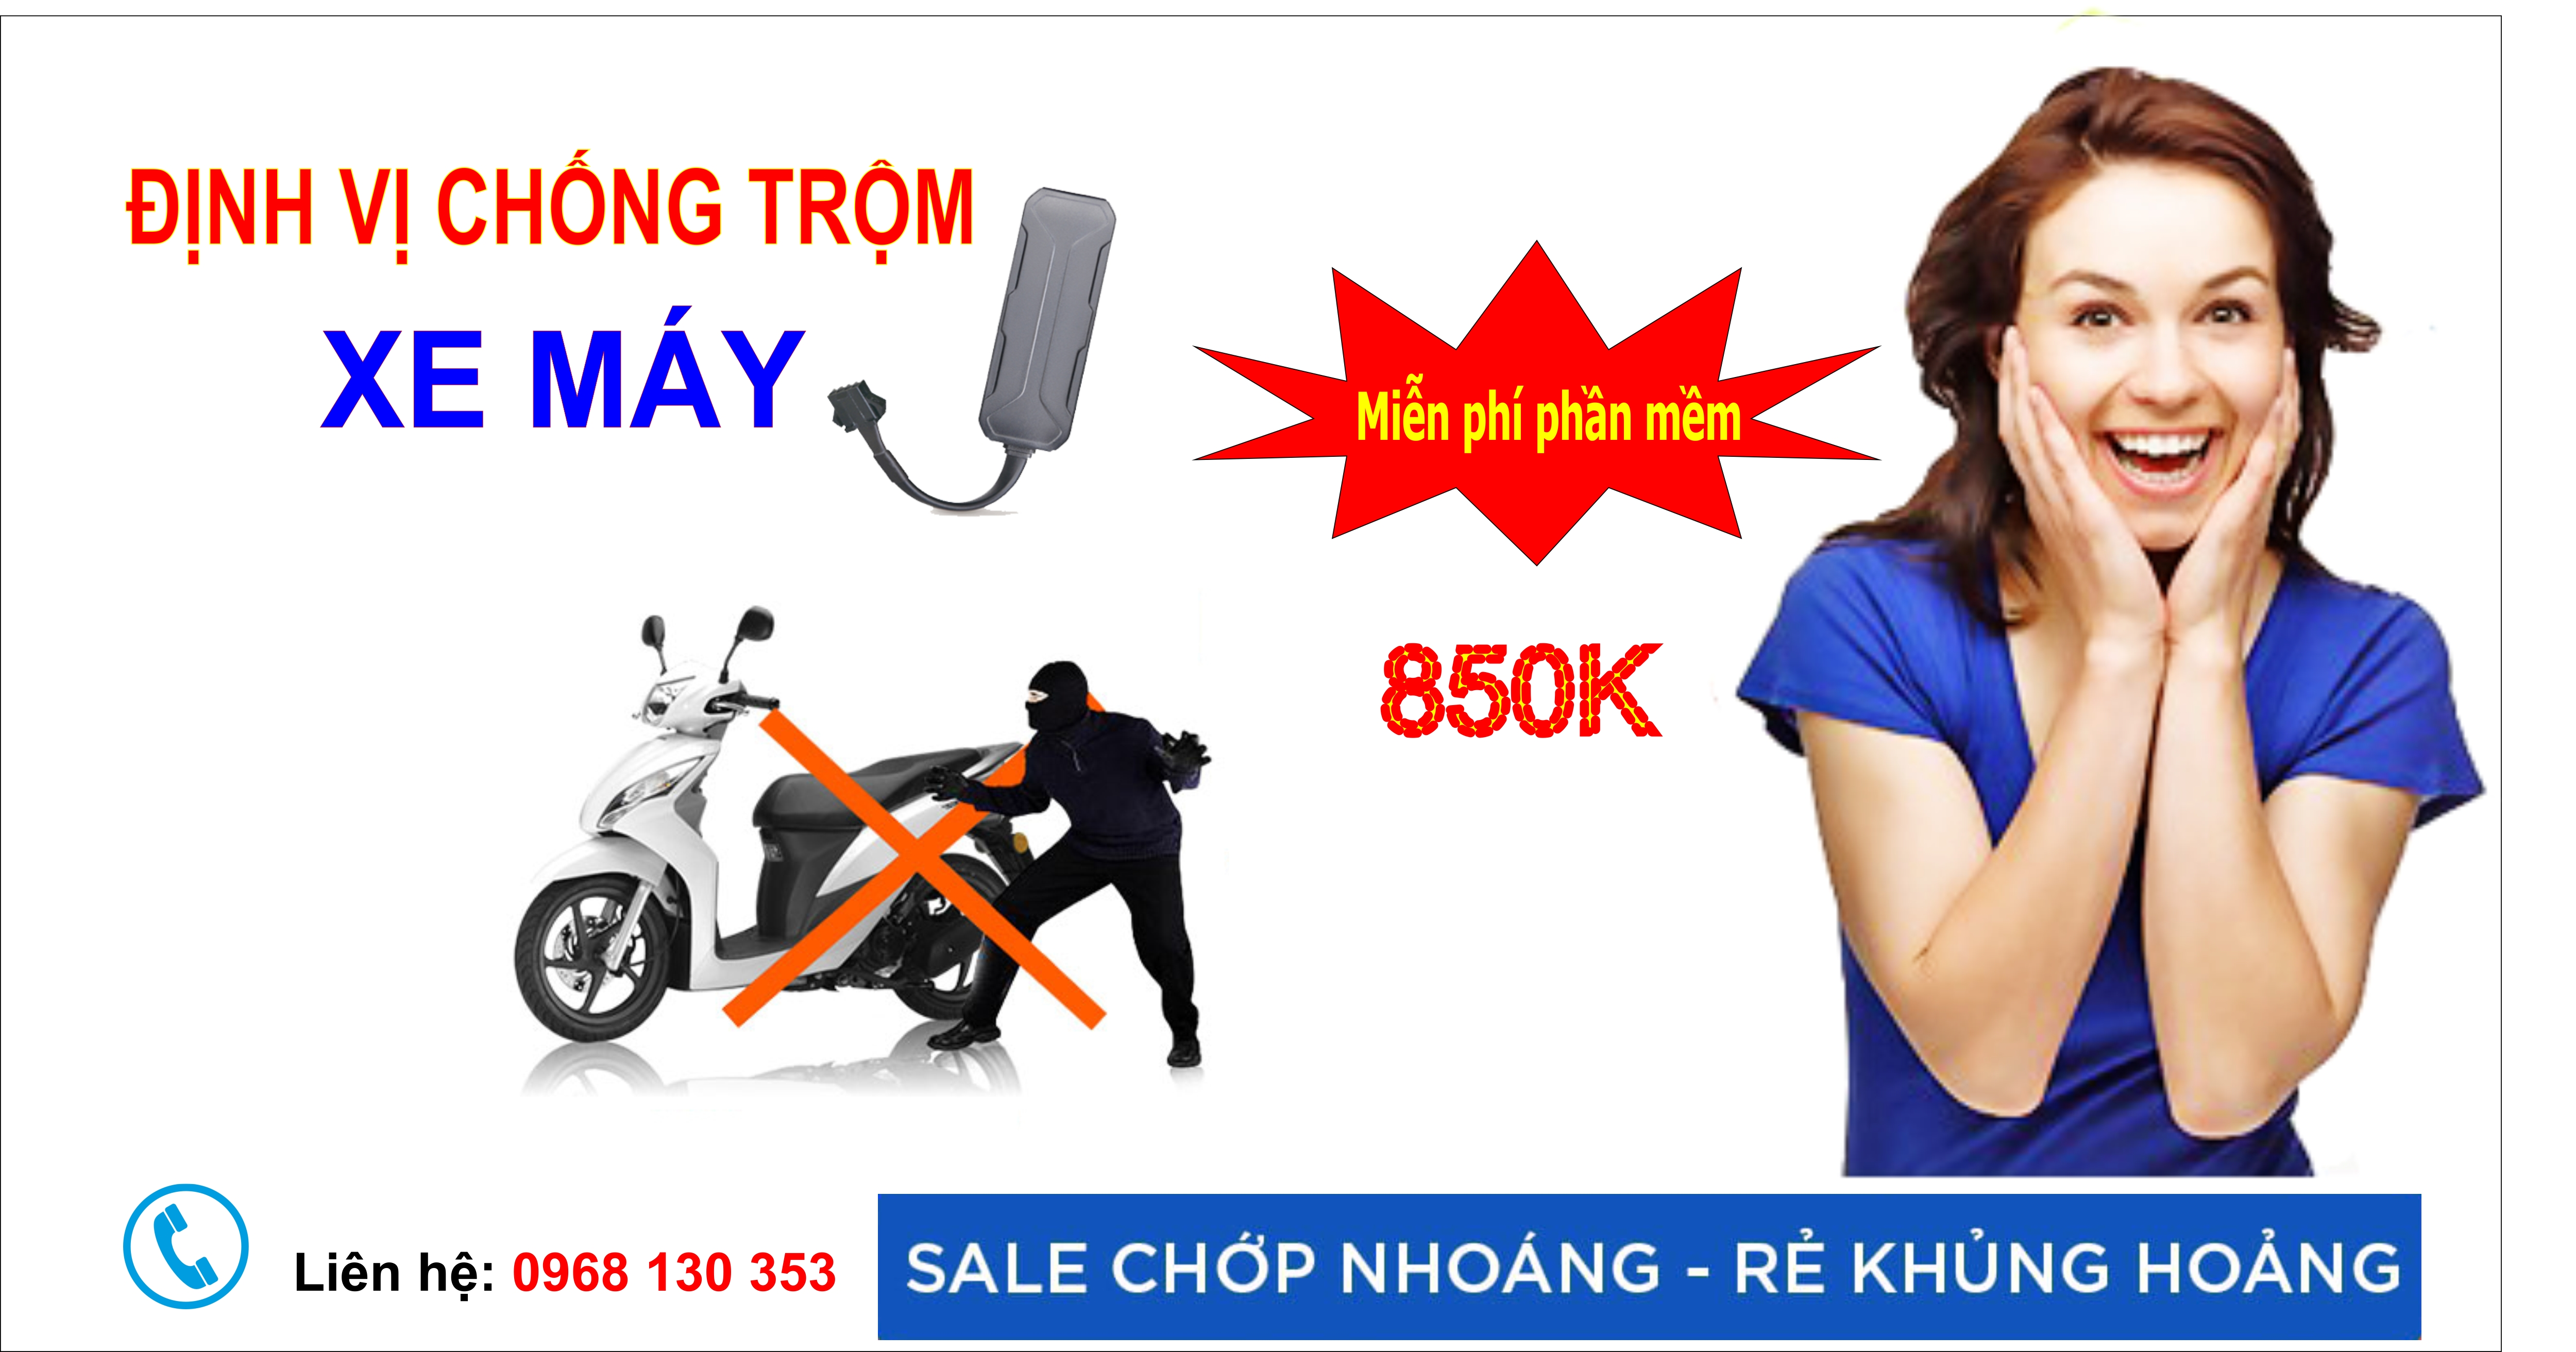 dinh-vi-xe-may-gia-re-850k